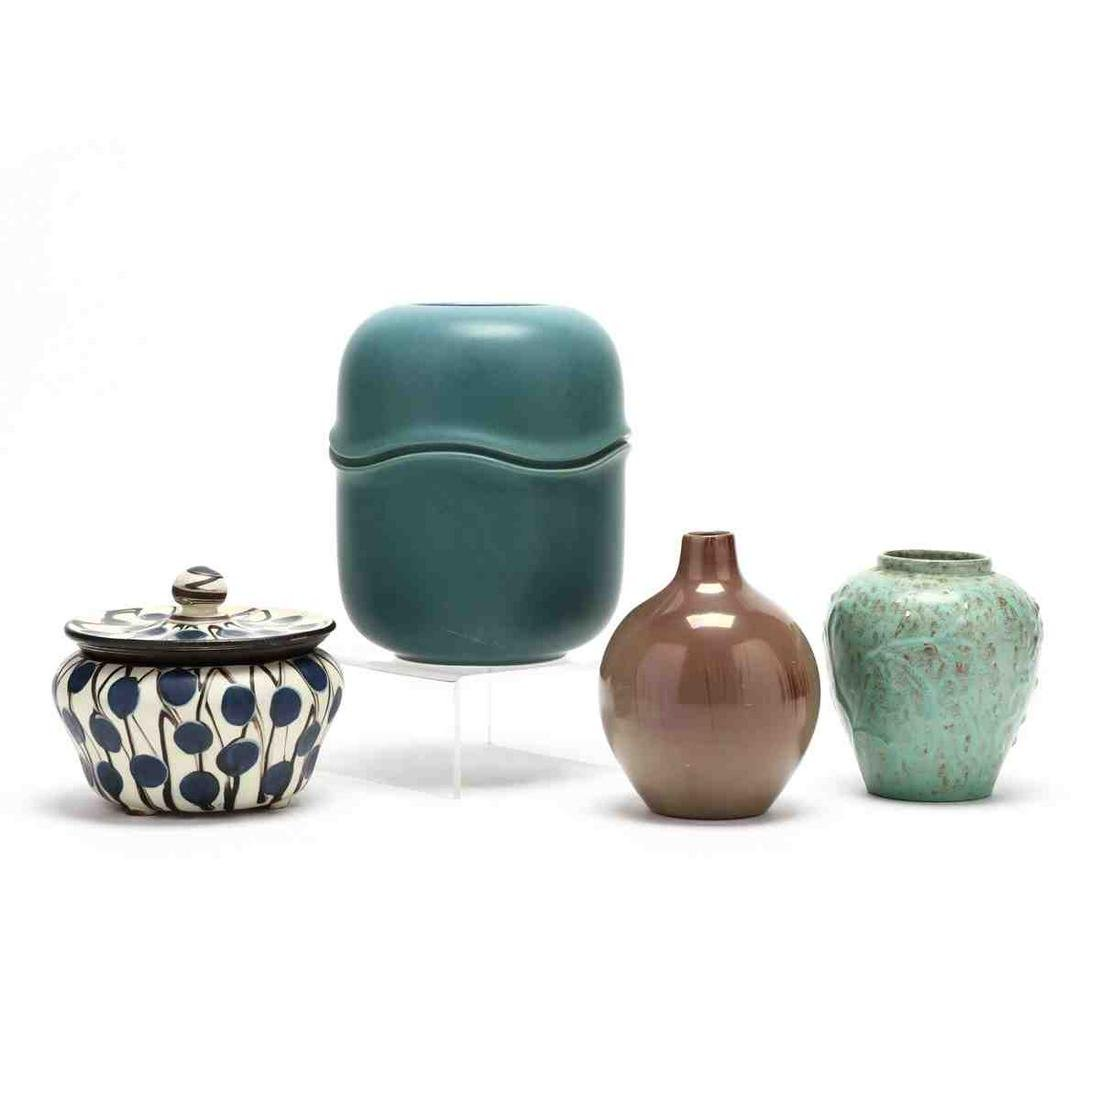 Four Pieces of Mid Century Modern Ceramics